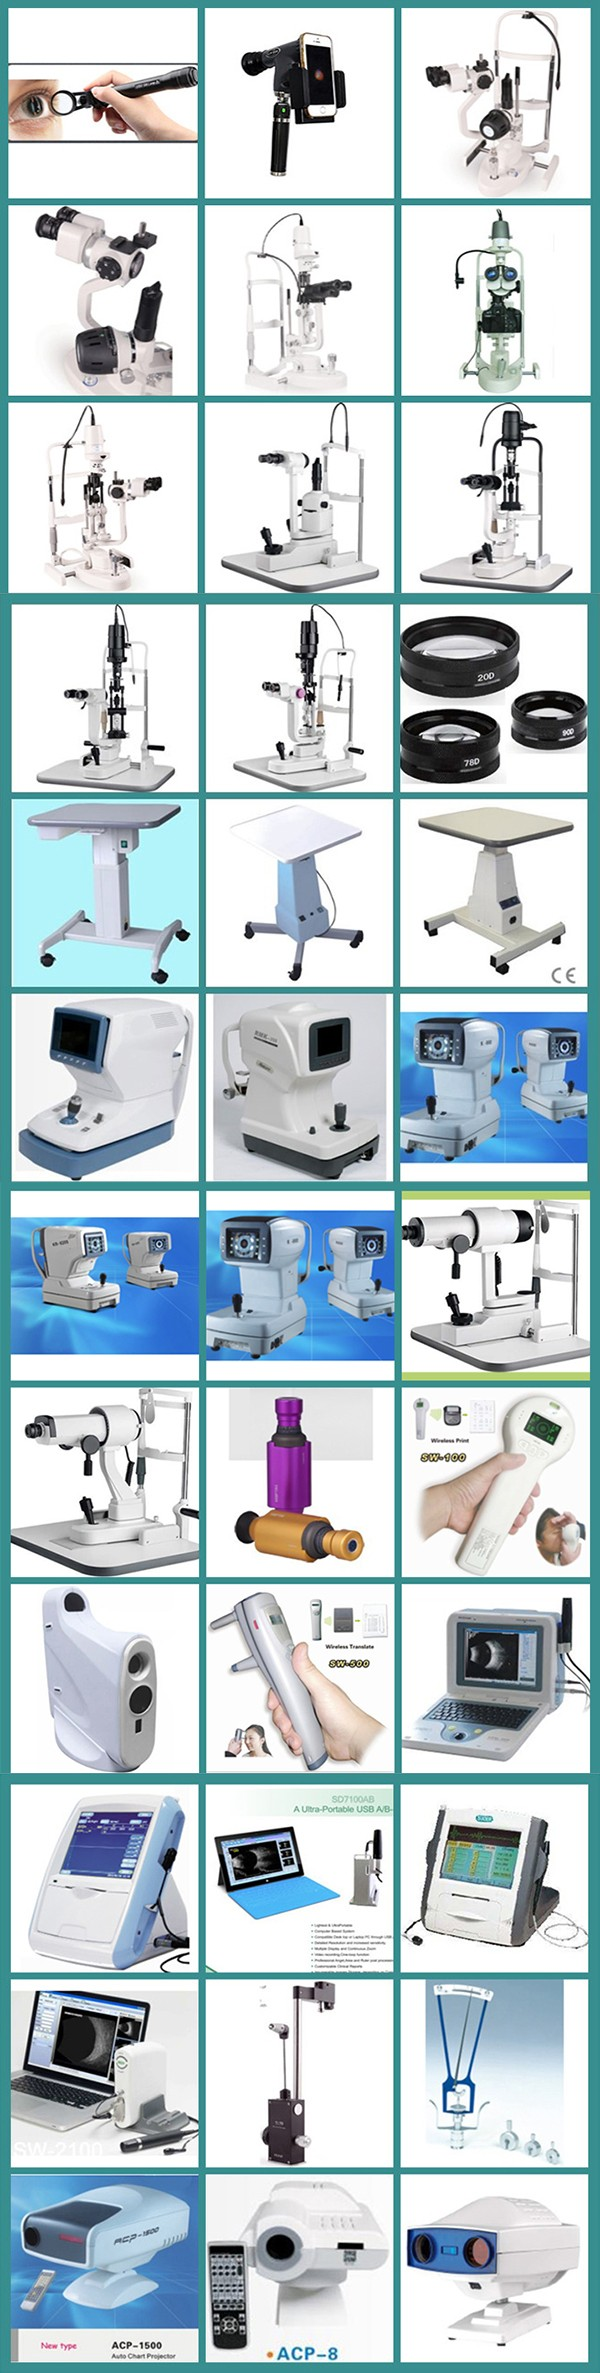 Picture of Ophthalmic Equipment 1.jpg